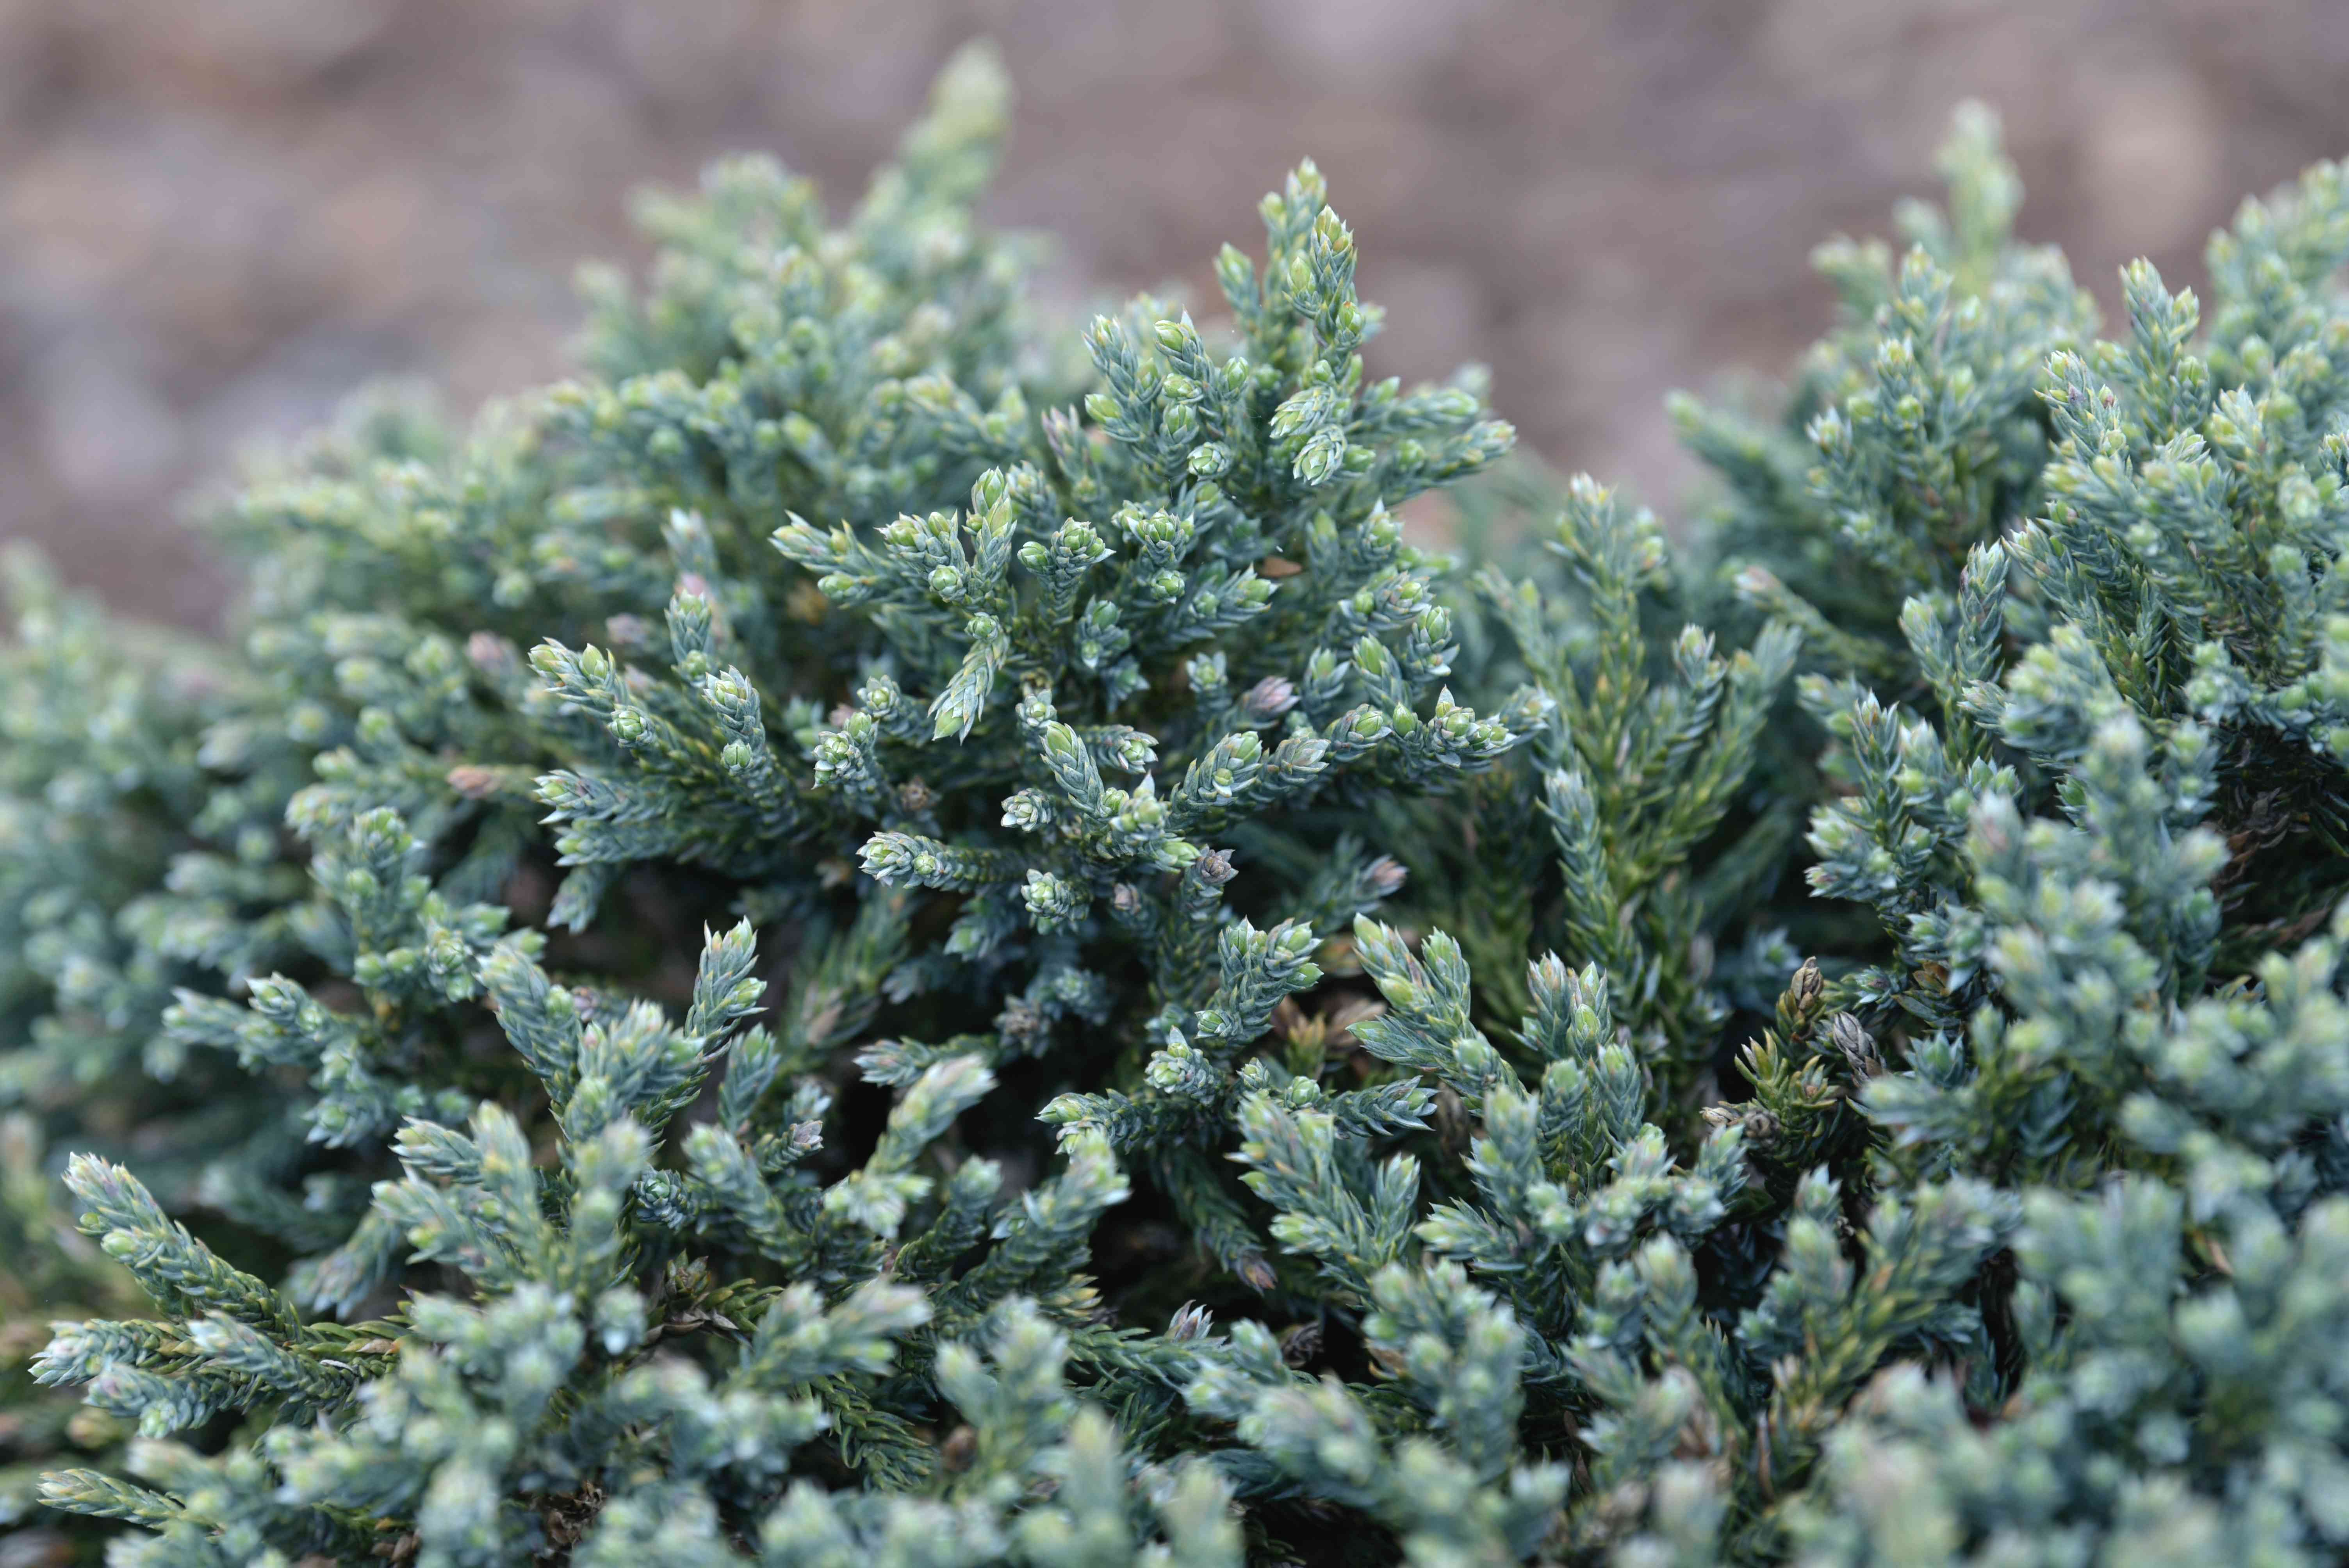 Blue star juniper evergreen shrub branches with silvery-blue needles clustered together closeup